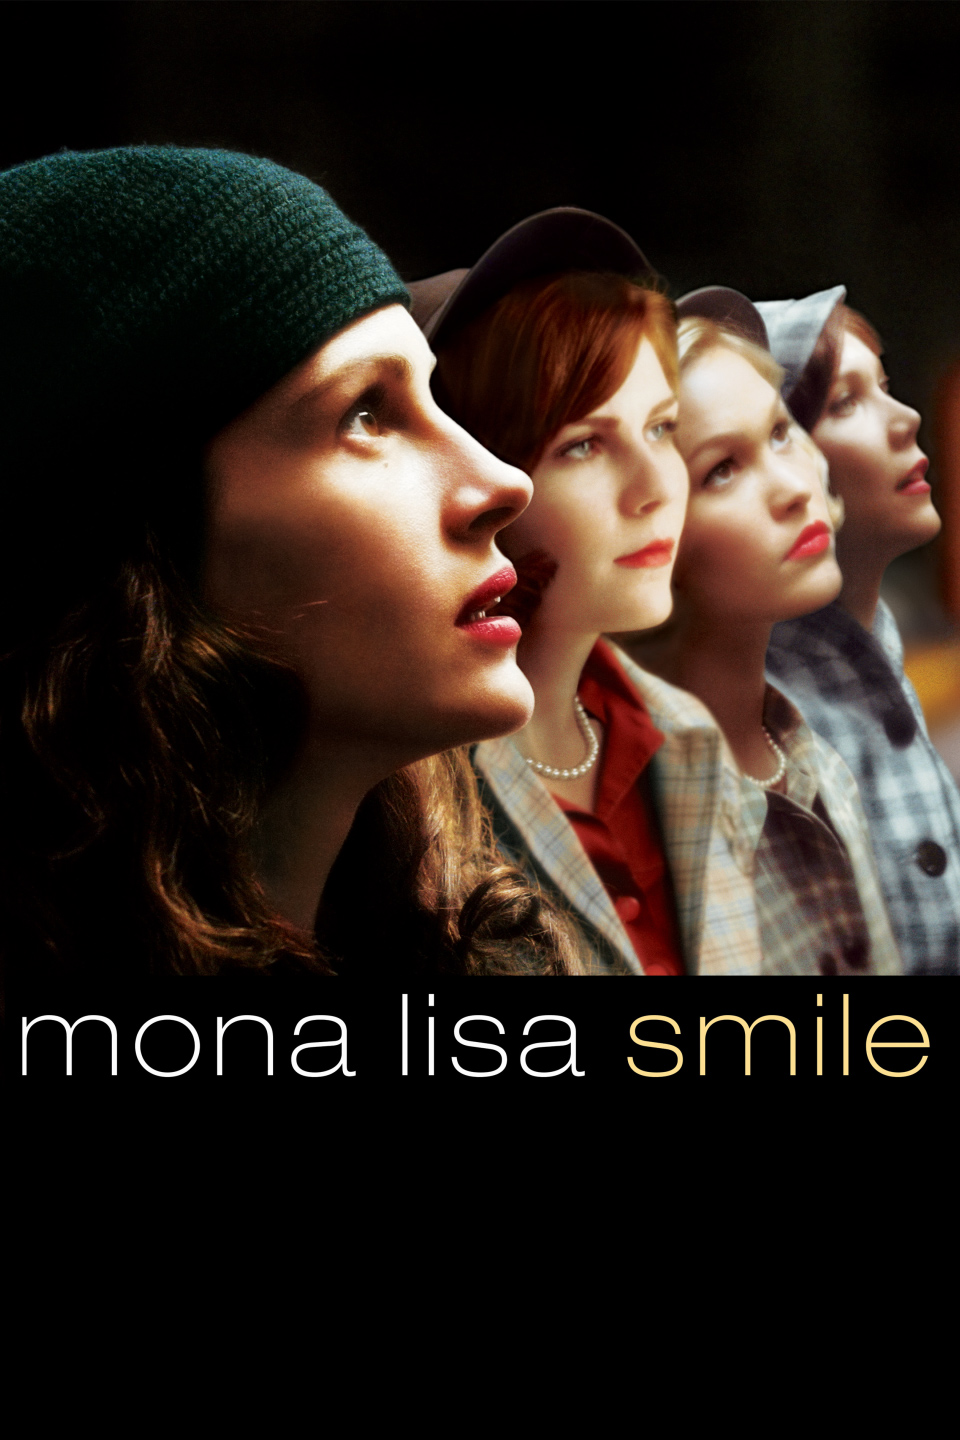 comments on mona lisa smile An appealing female cast gives the hollowly formulaic mona lisa smile more dignity than it perhaps deserves, yet it's julia roberts in an ill-suited starring role.